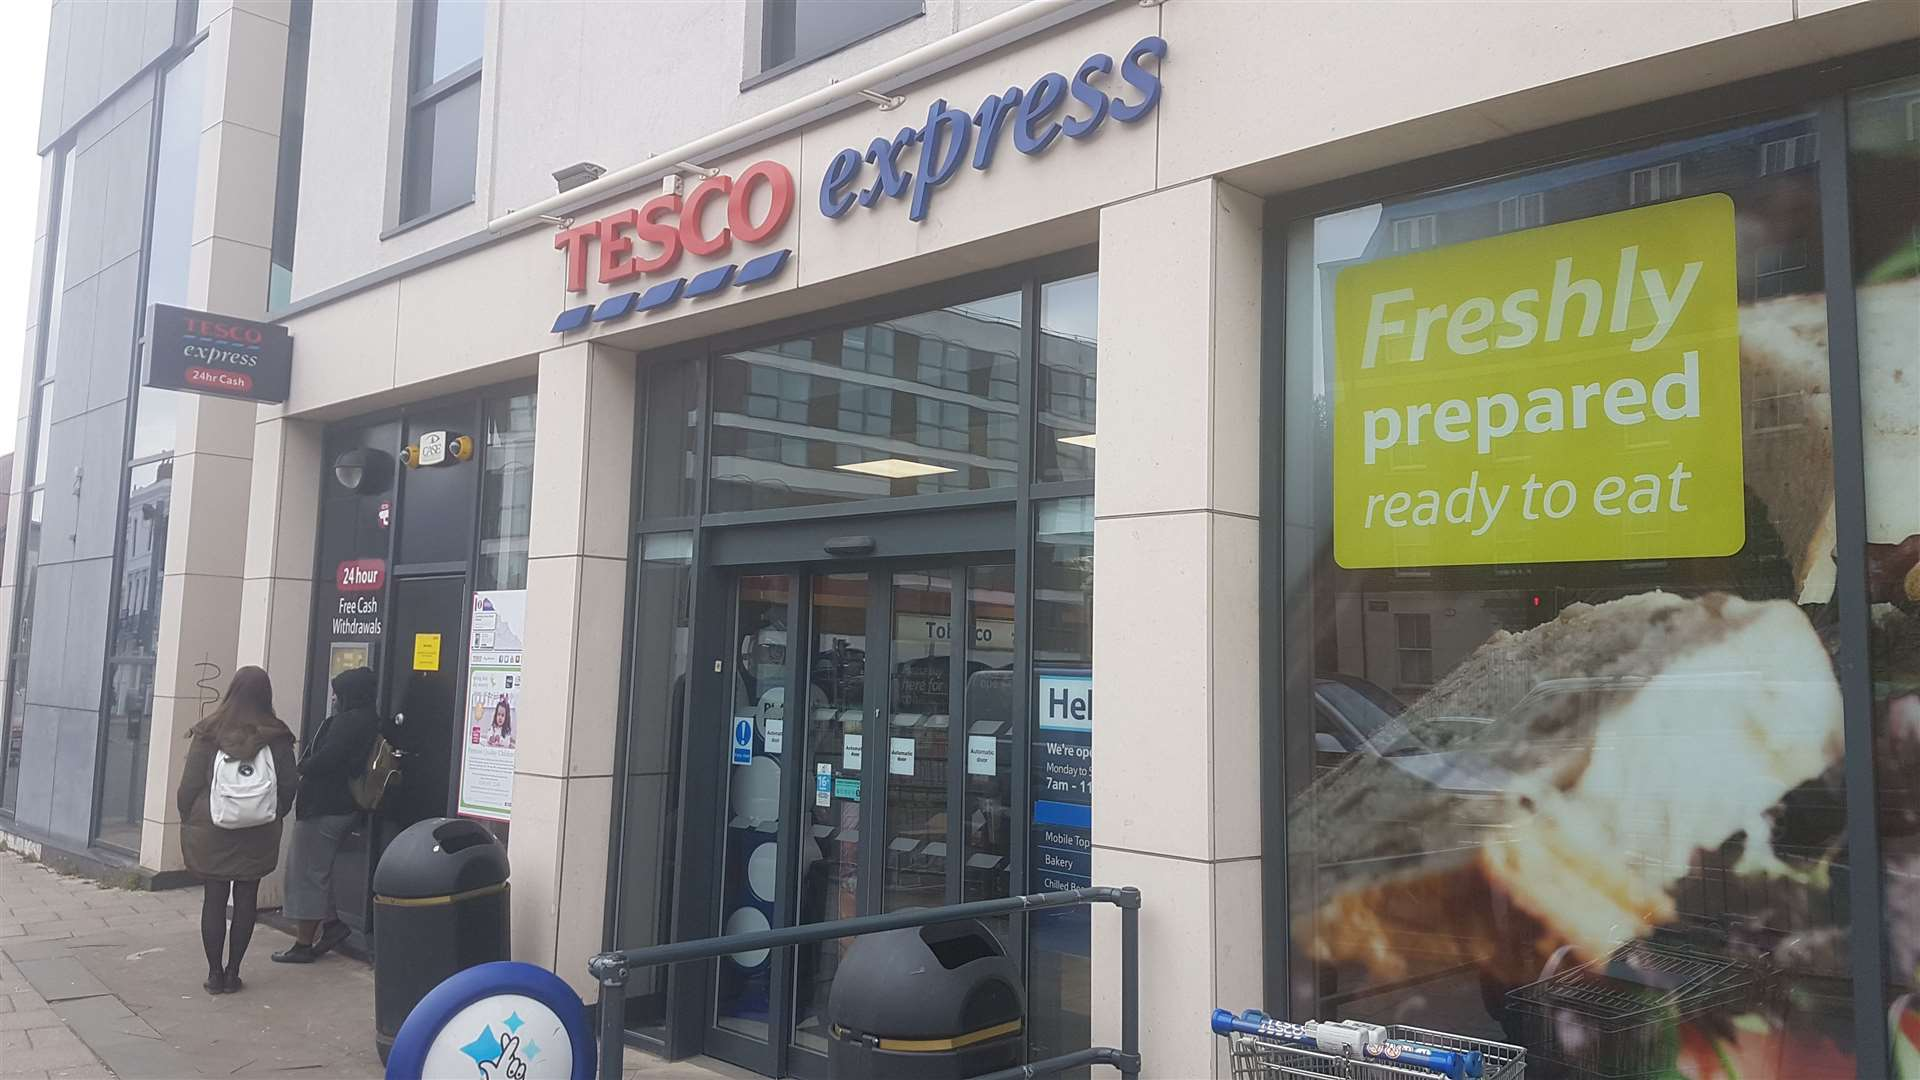 The Tesco Express in New Dover Road (12941289)